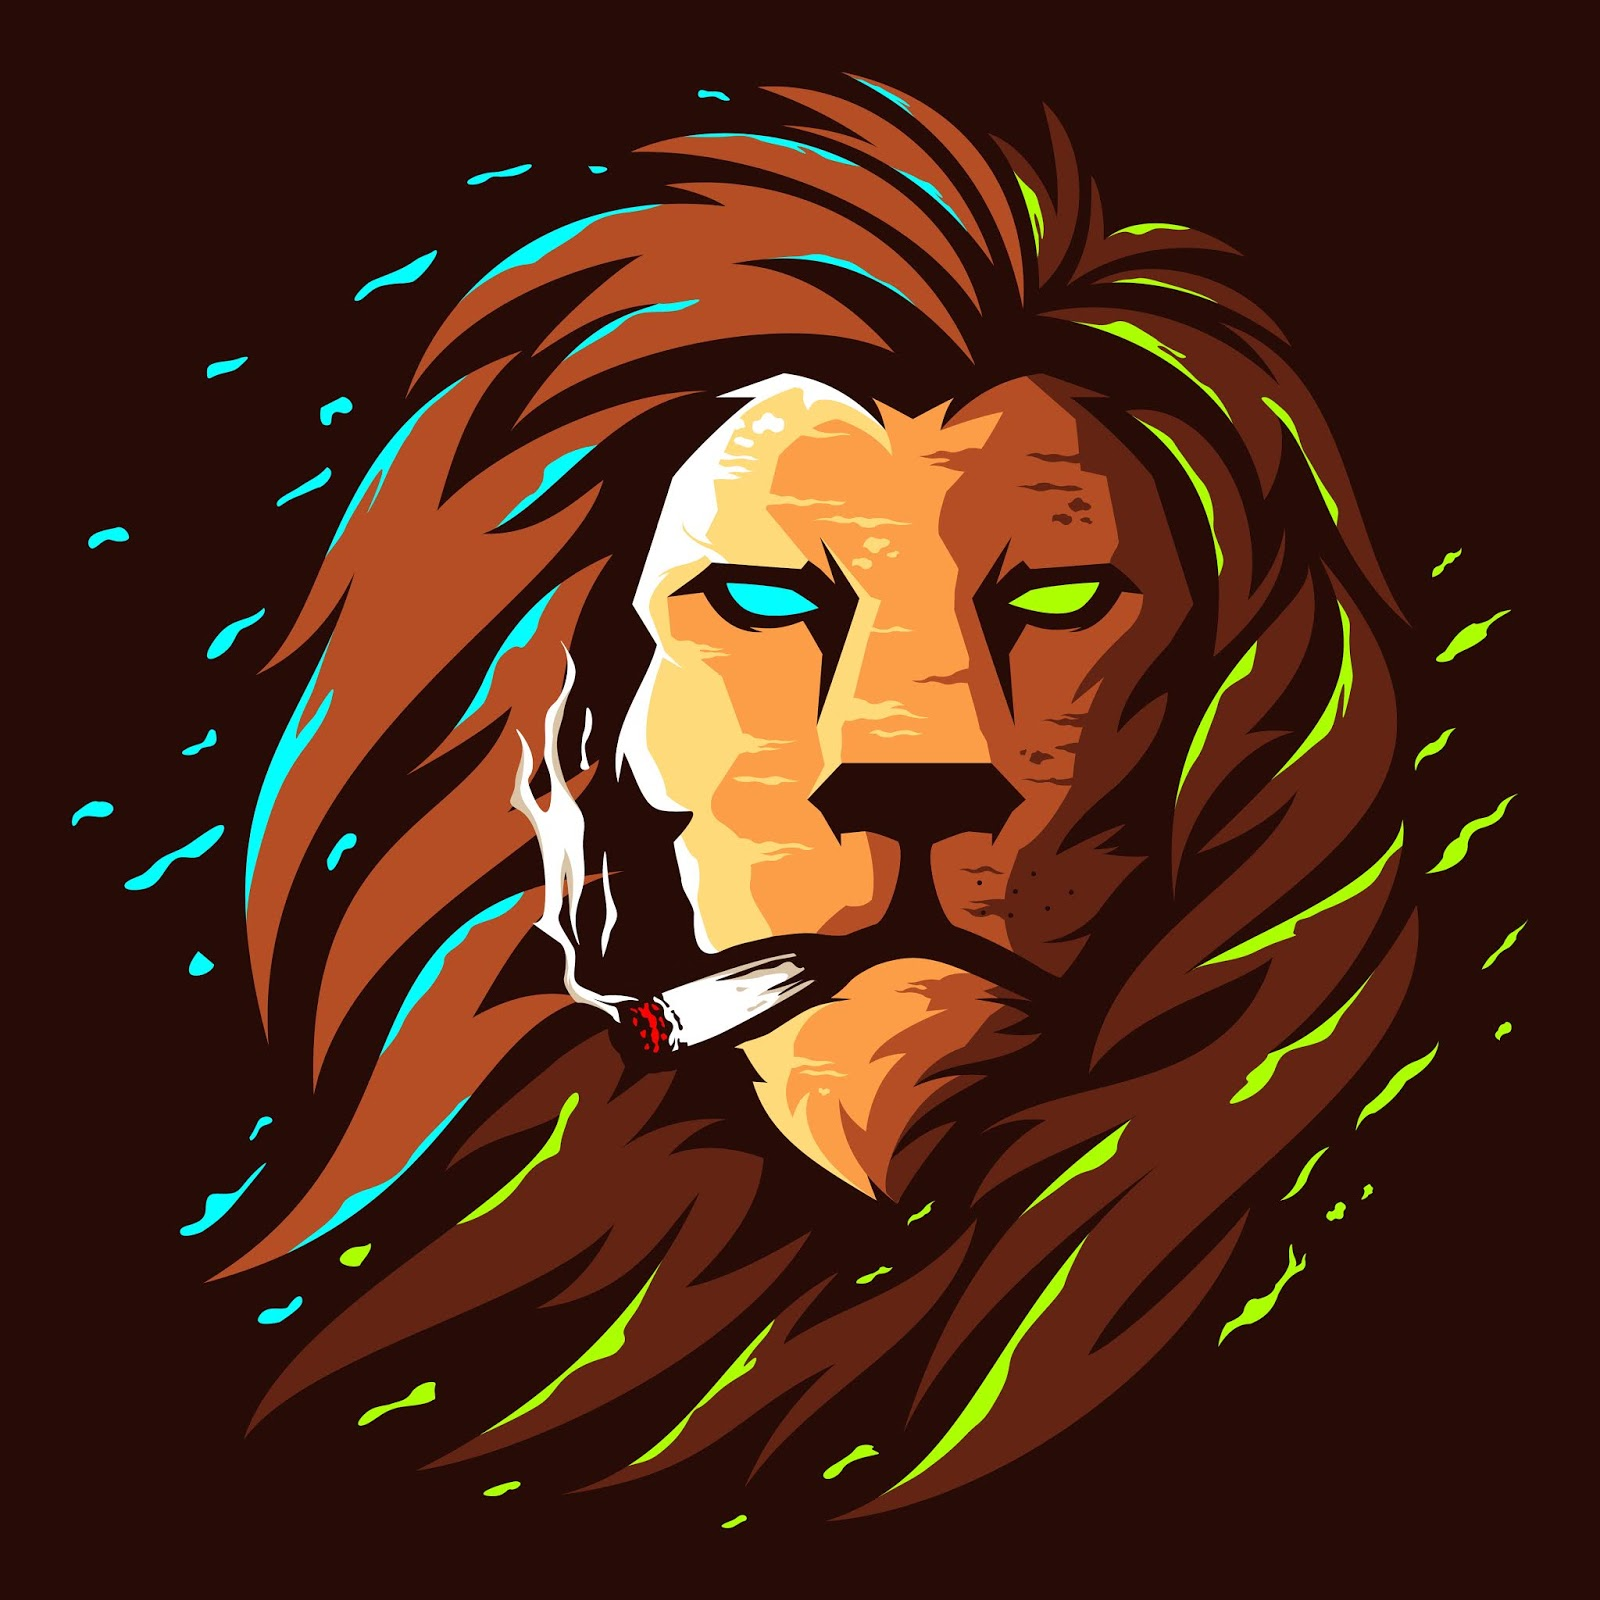 Lion Head Illustration Colour Logo Design Free Download Vector CDR, AI, EPS and PNG Formats